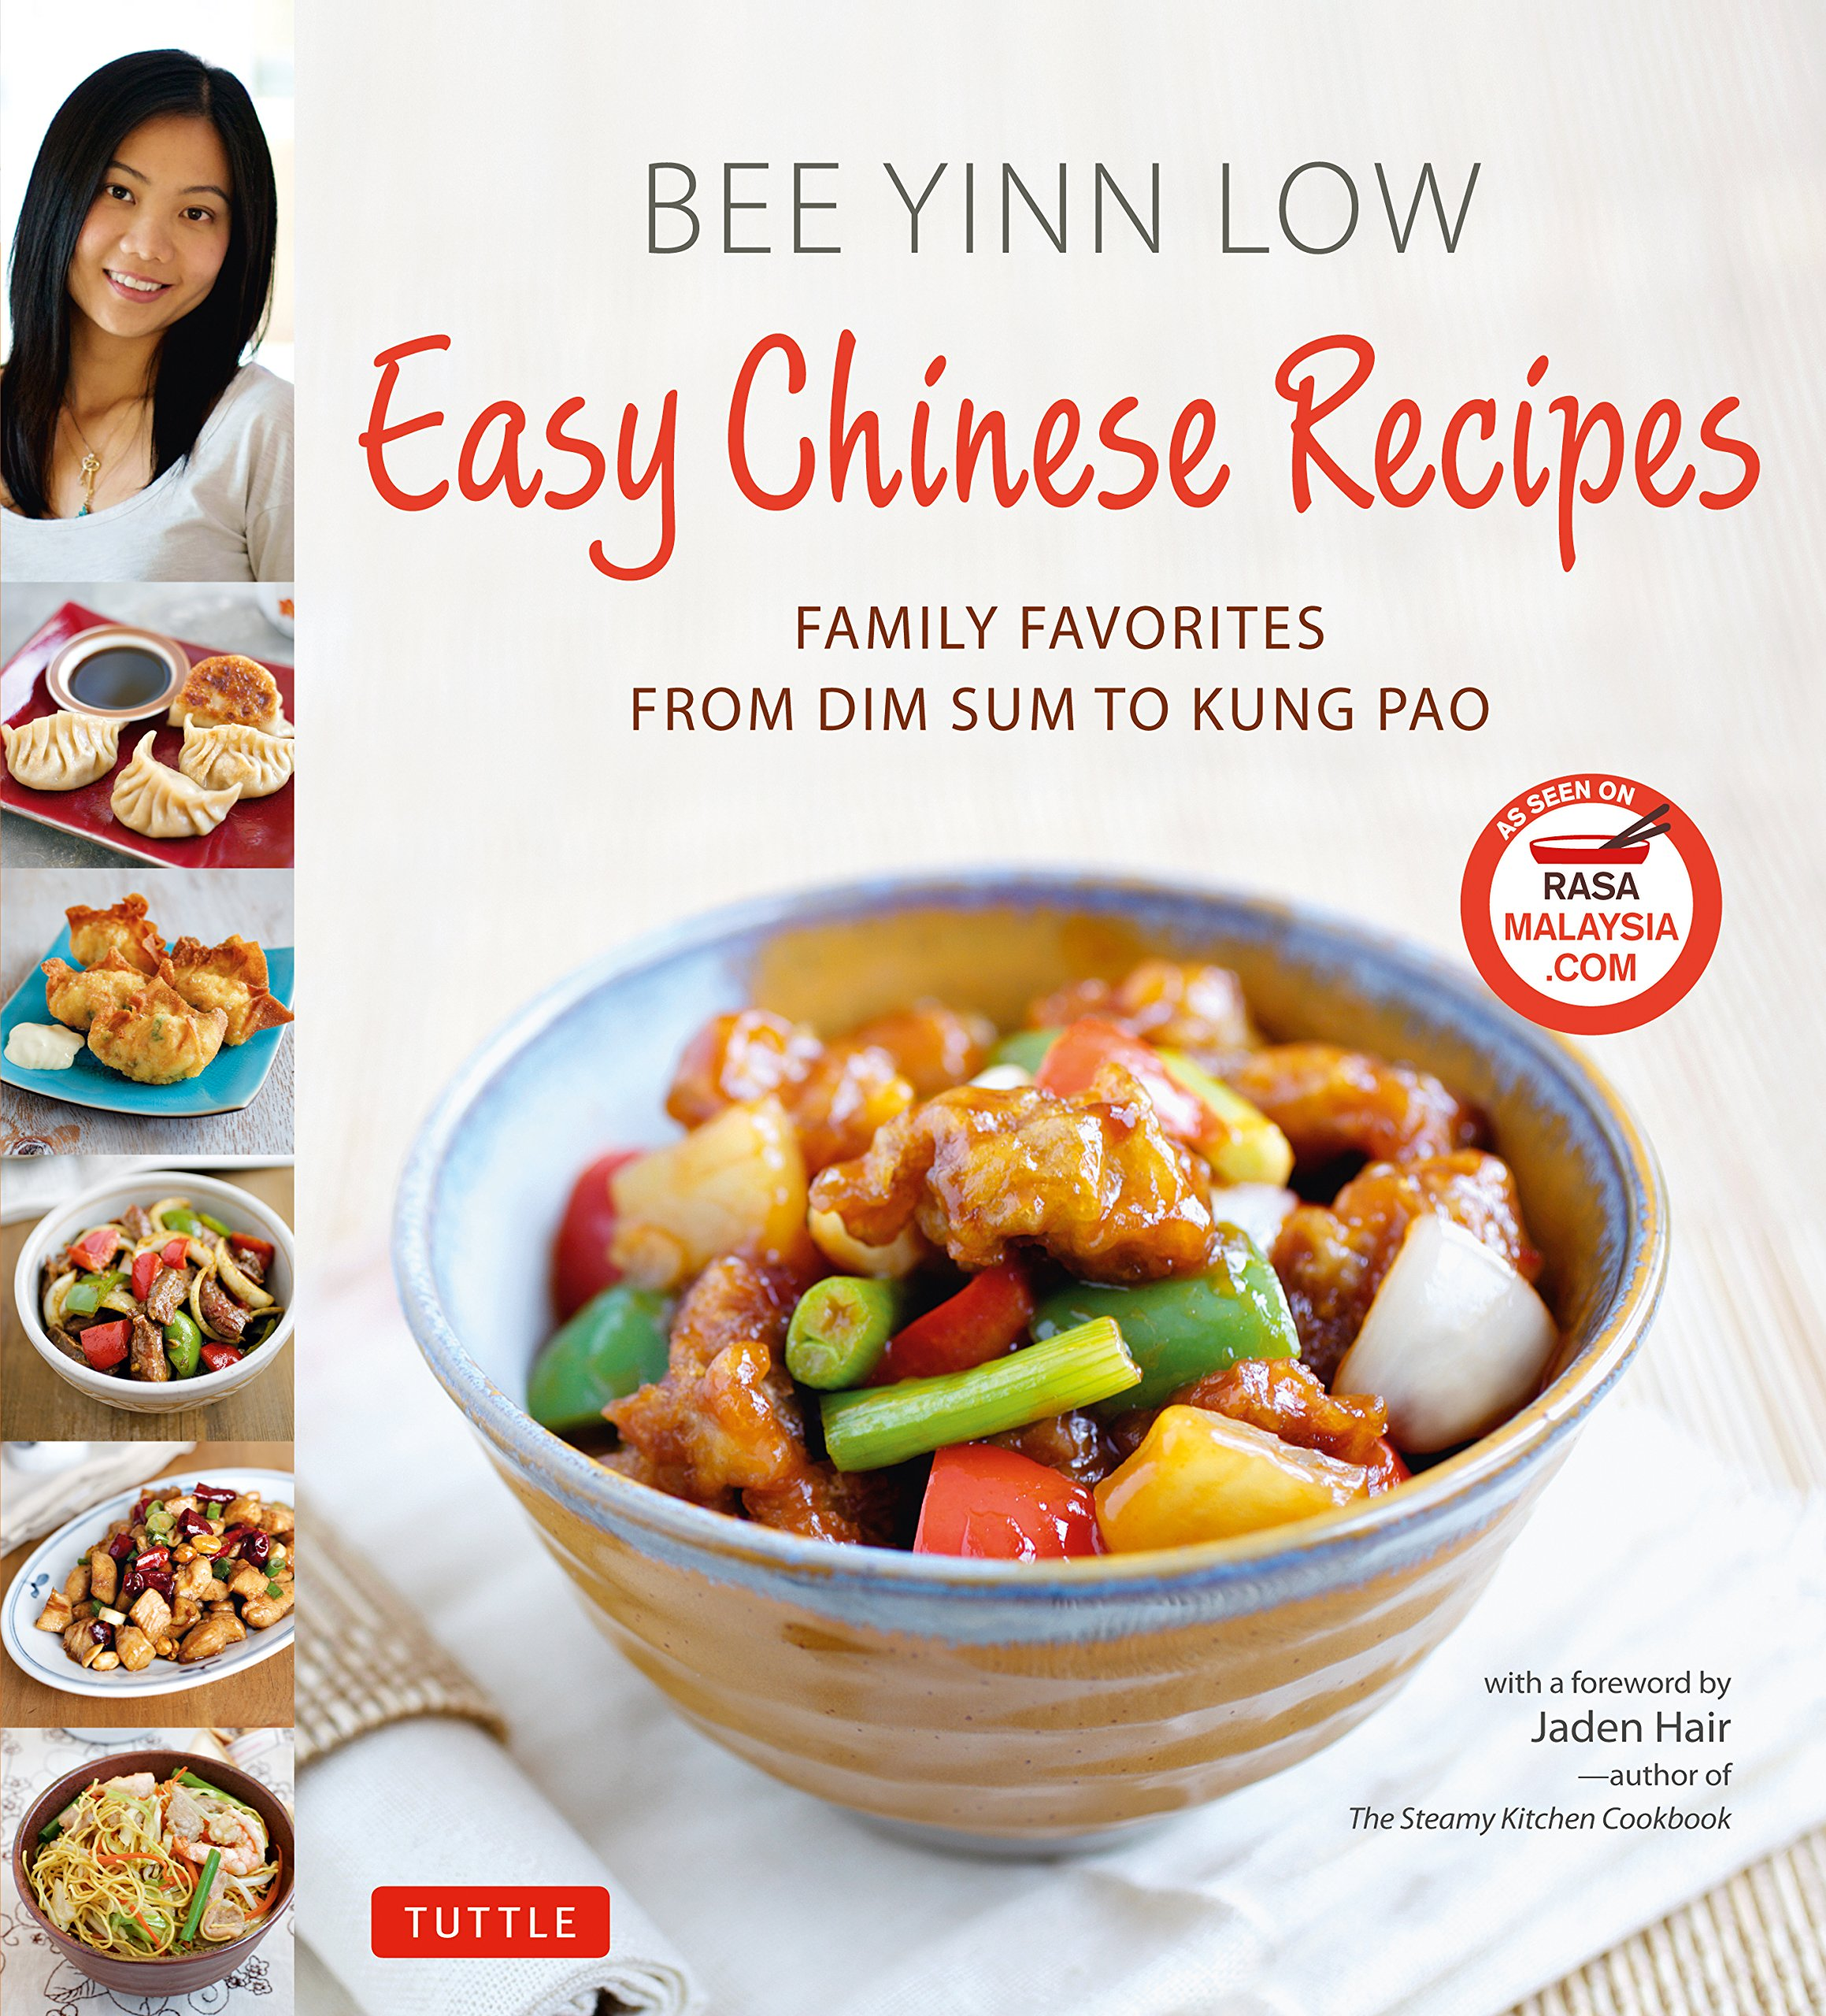 Easy chinese recipes family favorites from dim sum to kung pao bee easy chinese recipes family favorites from dim sum to kung pao bee yinn low jaden hair 8601300501789 amazon books forumfinder Images